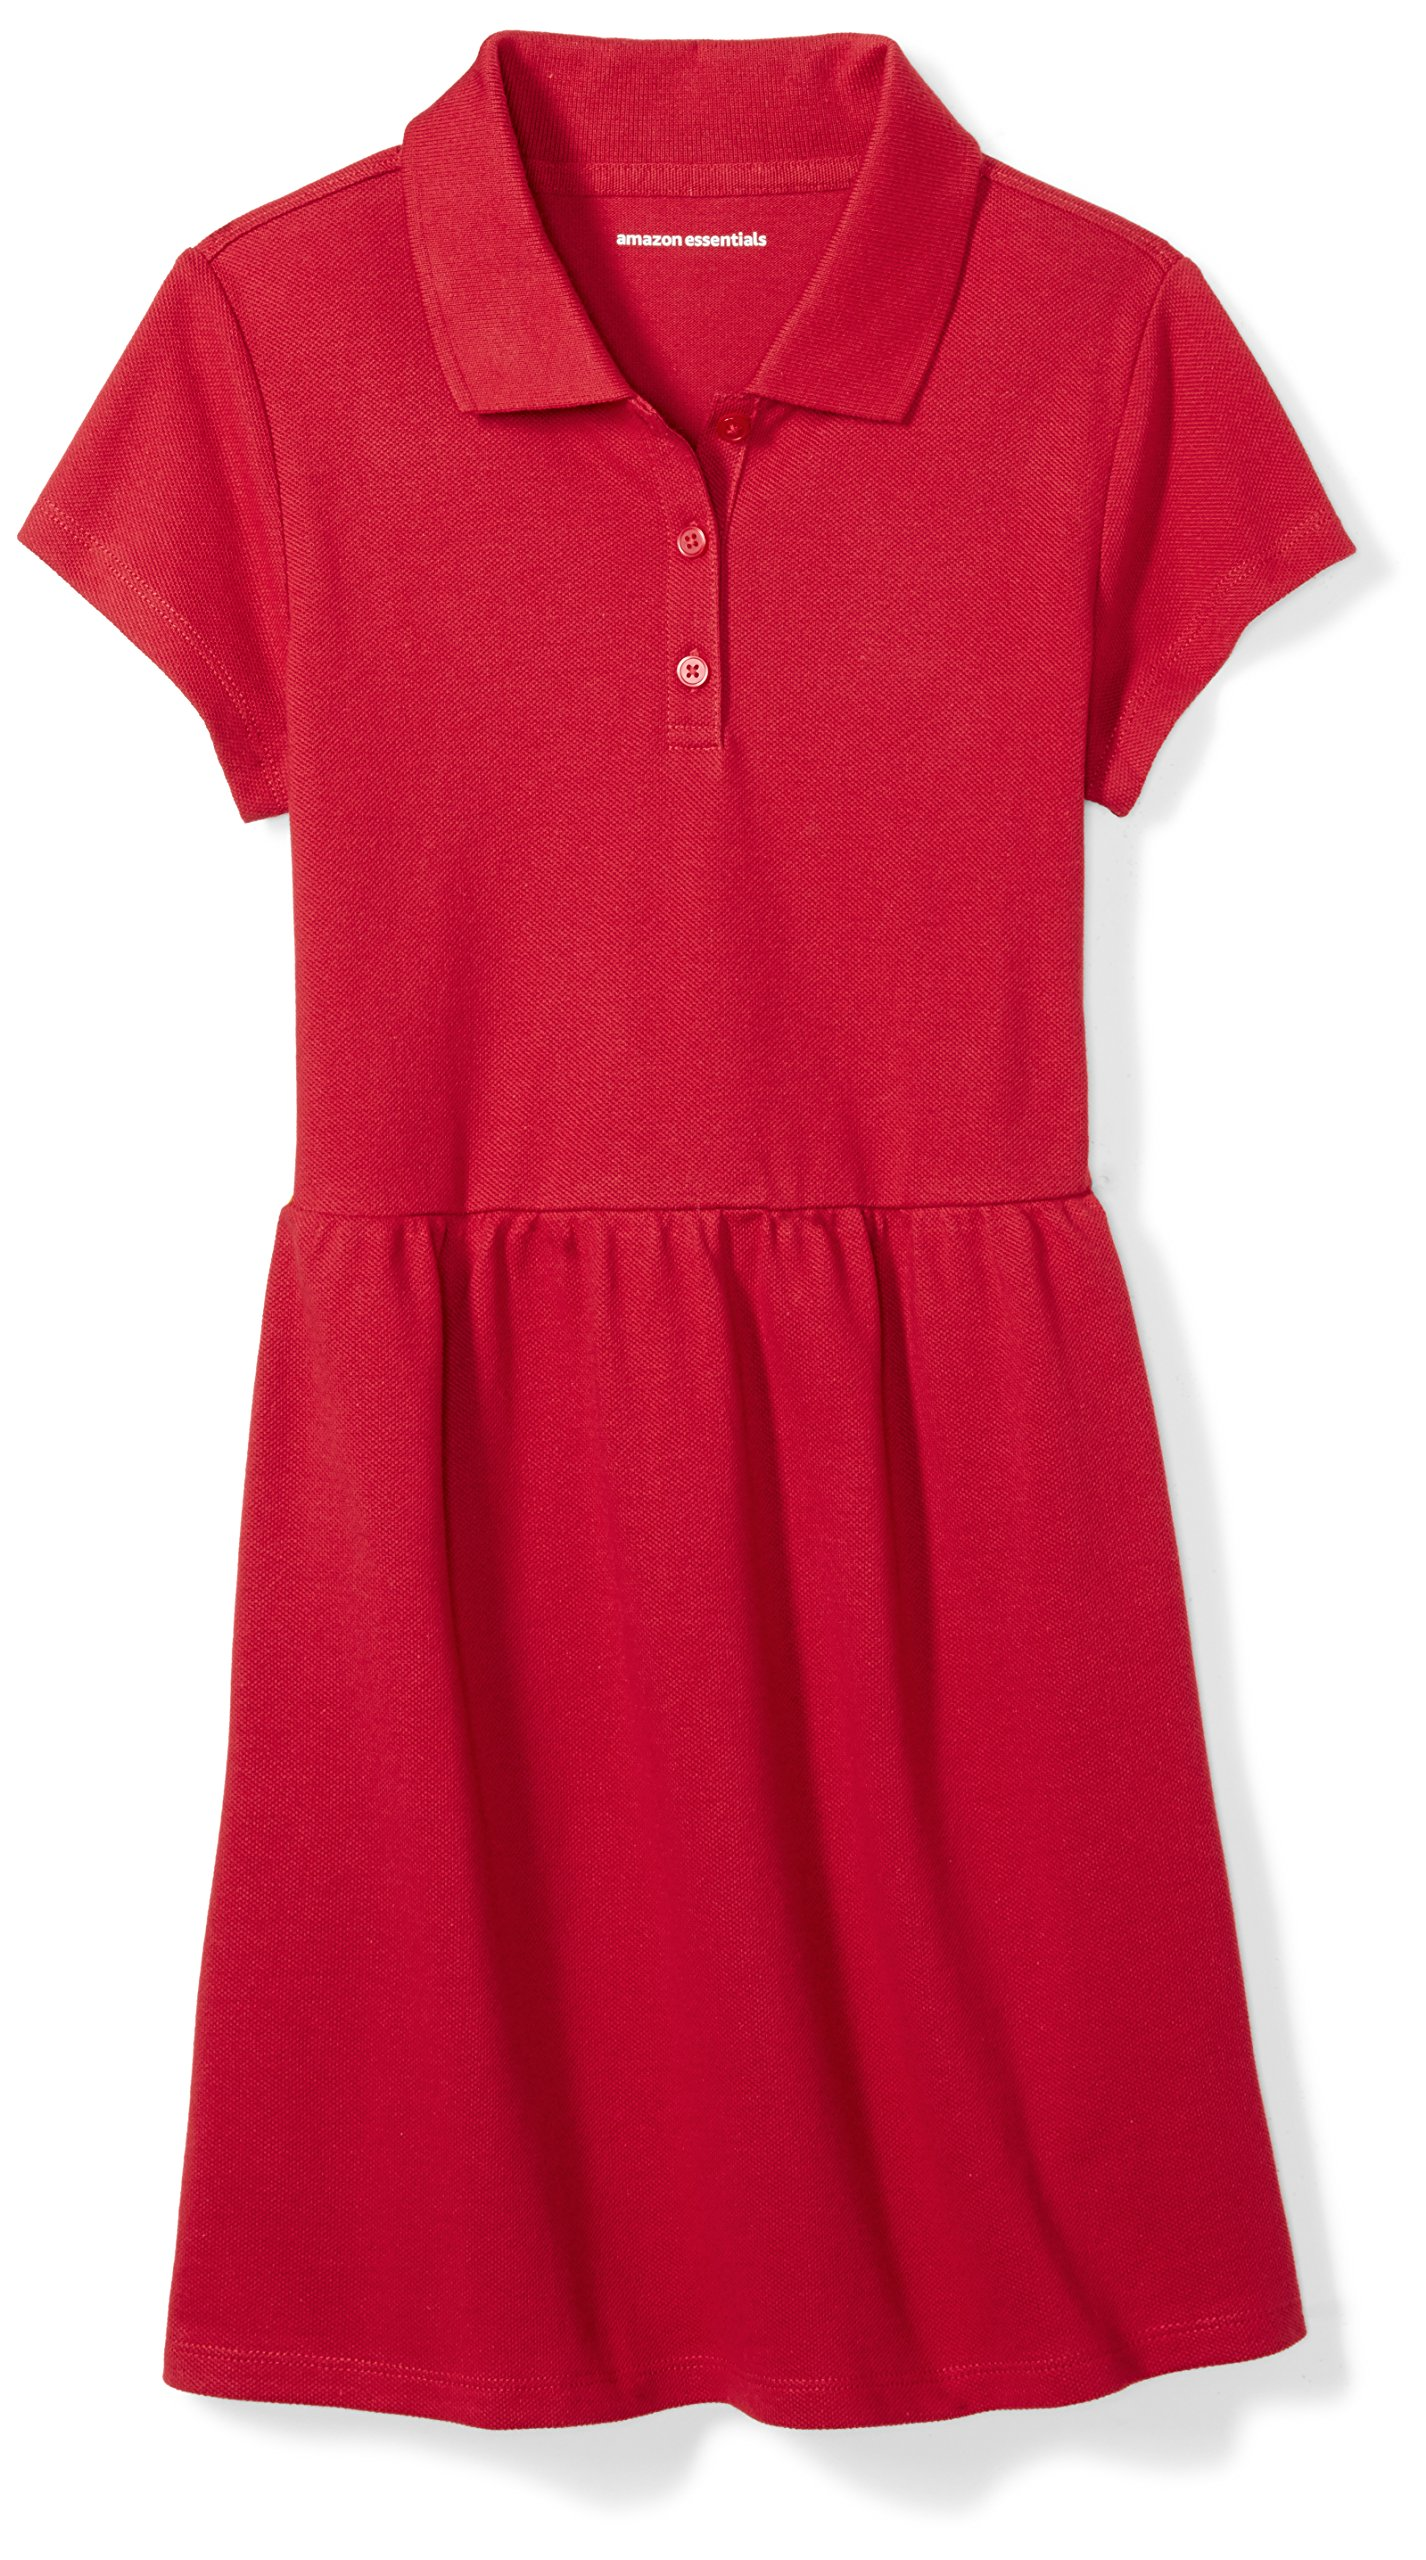 Amazon Essentials Girls' Short-Sleeve Polo Dress, Scooter Red, S (6-7)